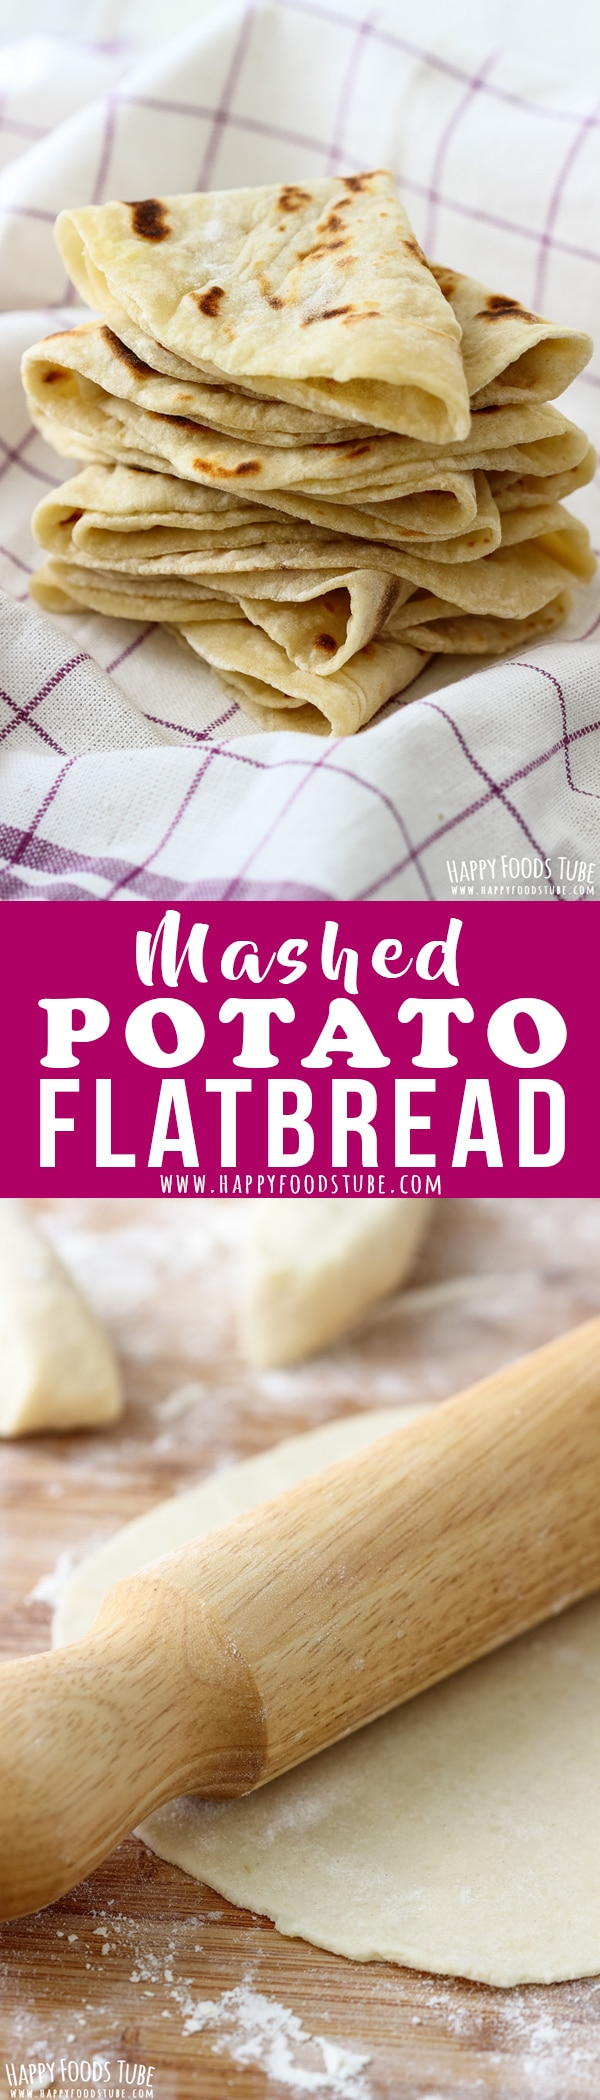 Simple Mashed Potato Flatbread Recipe. Having leftover mashed potatoes? Turn them into this easy mashed potato flatbread! It's a yeast-free & oil-free side dish that everyone loves! #potato #flatbread #recipe #food #lunch #dinner #cooking #simple #mashed #noyeast